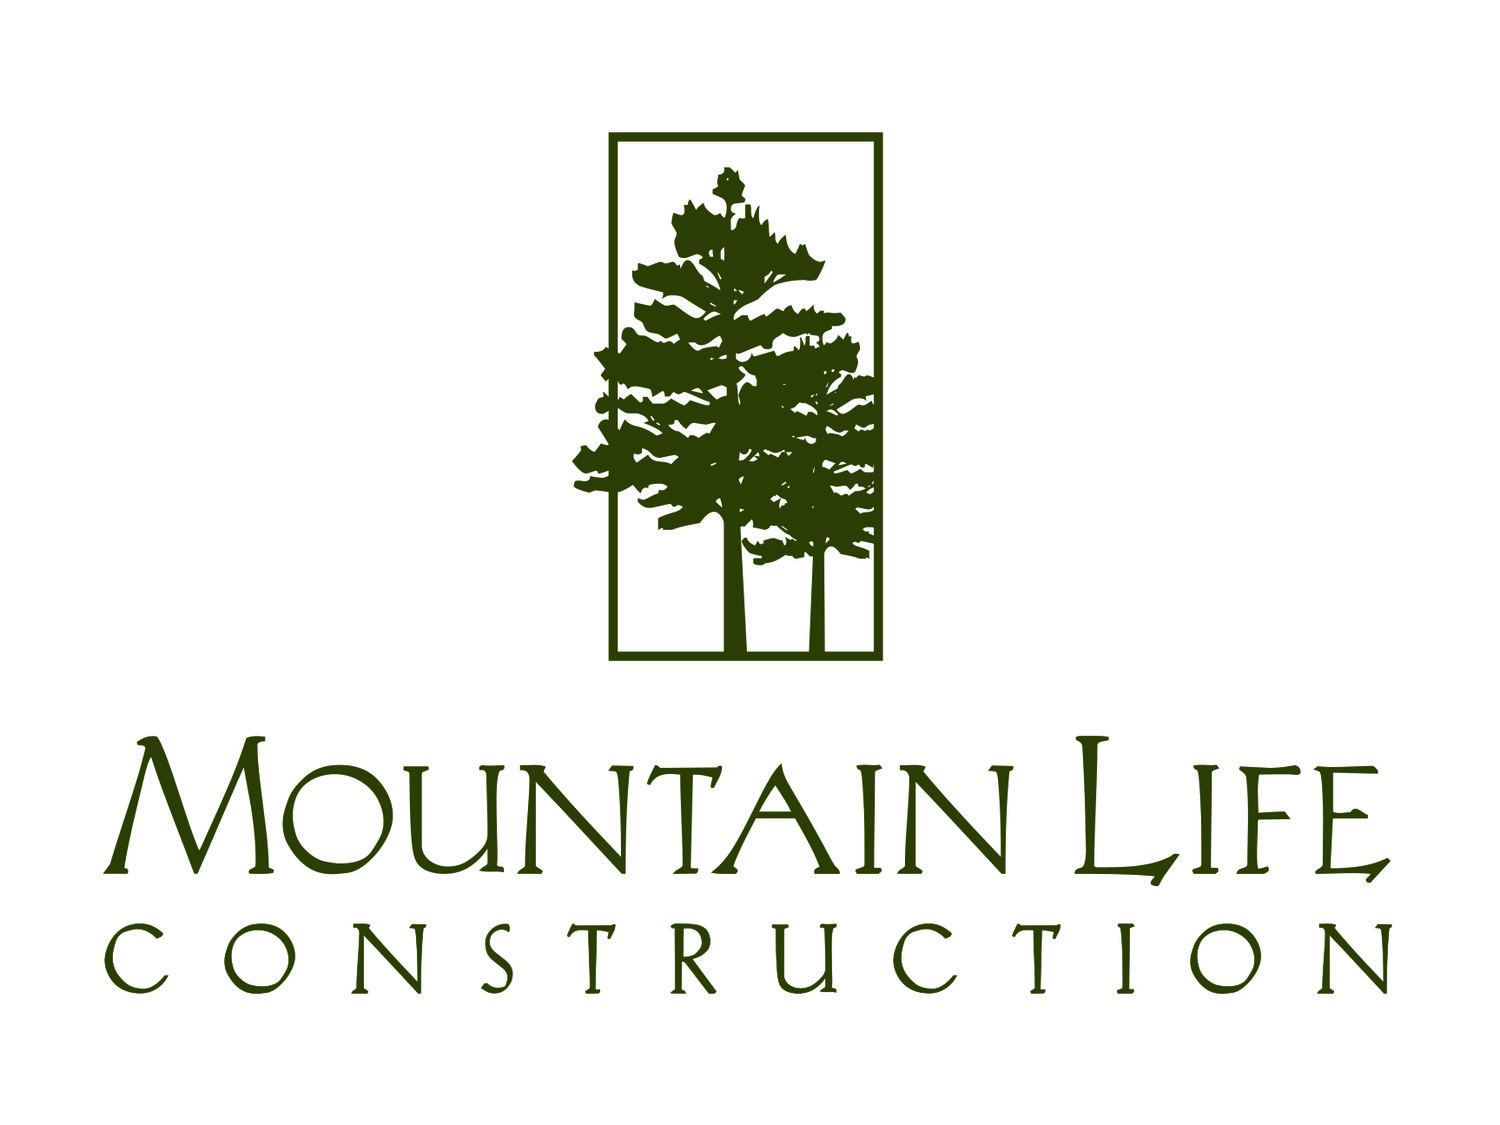 Mountain Life Construction